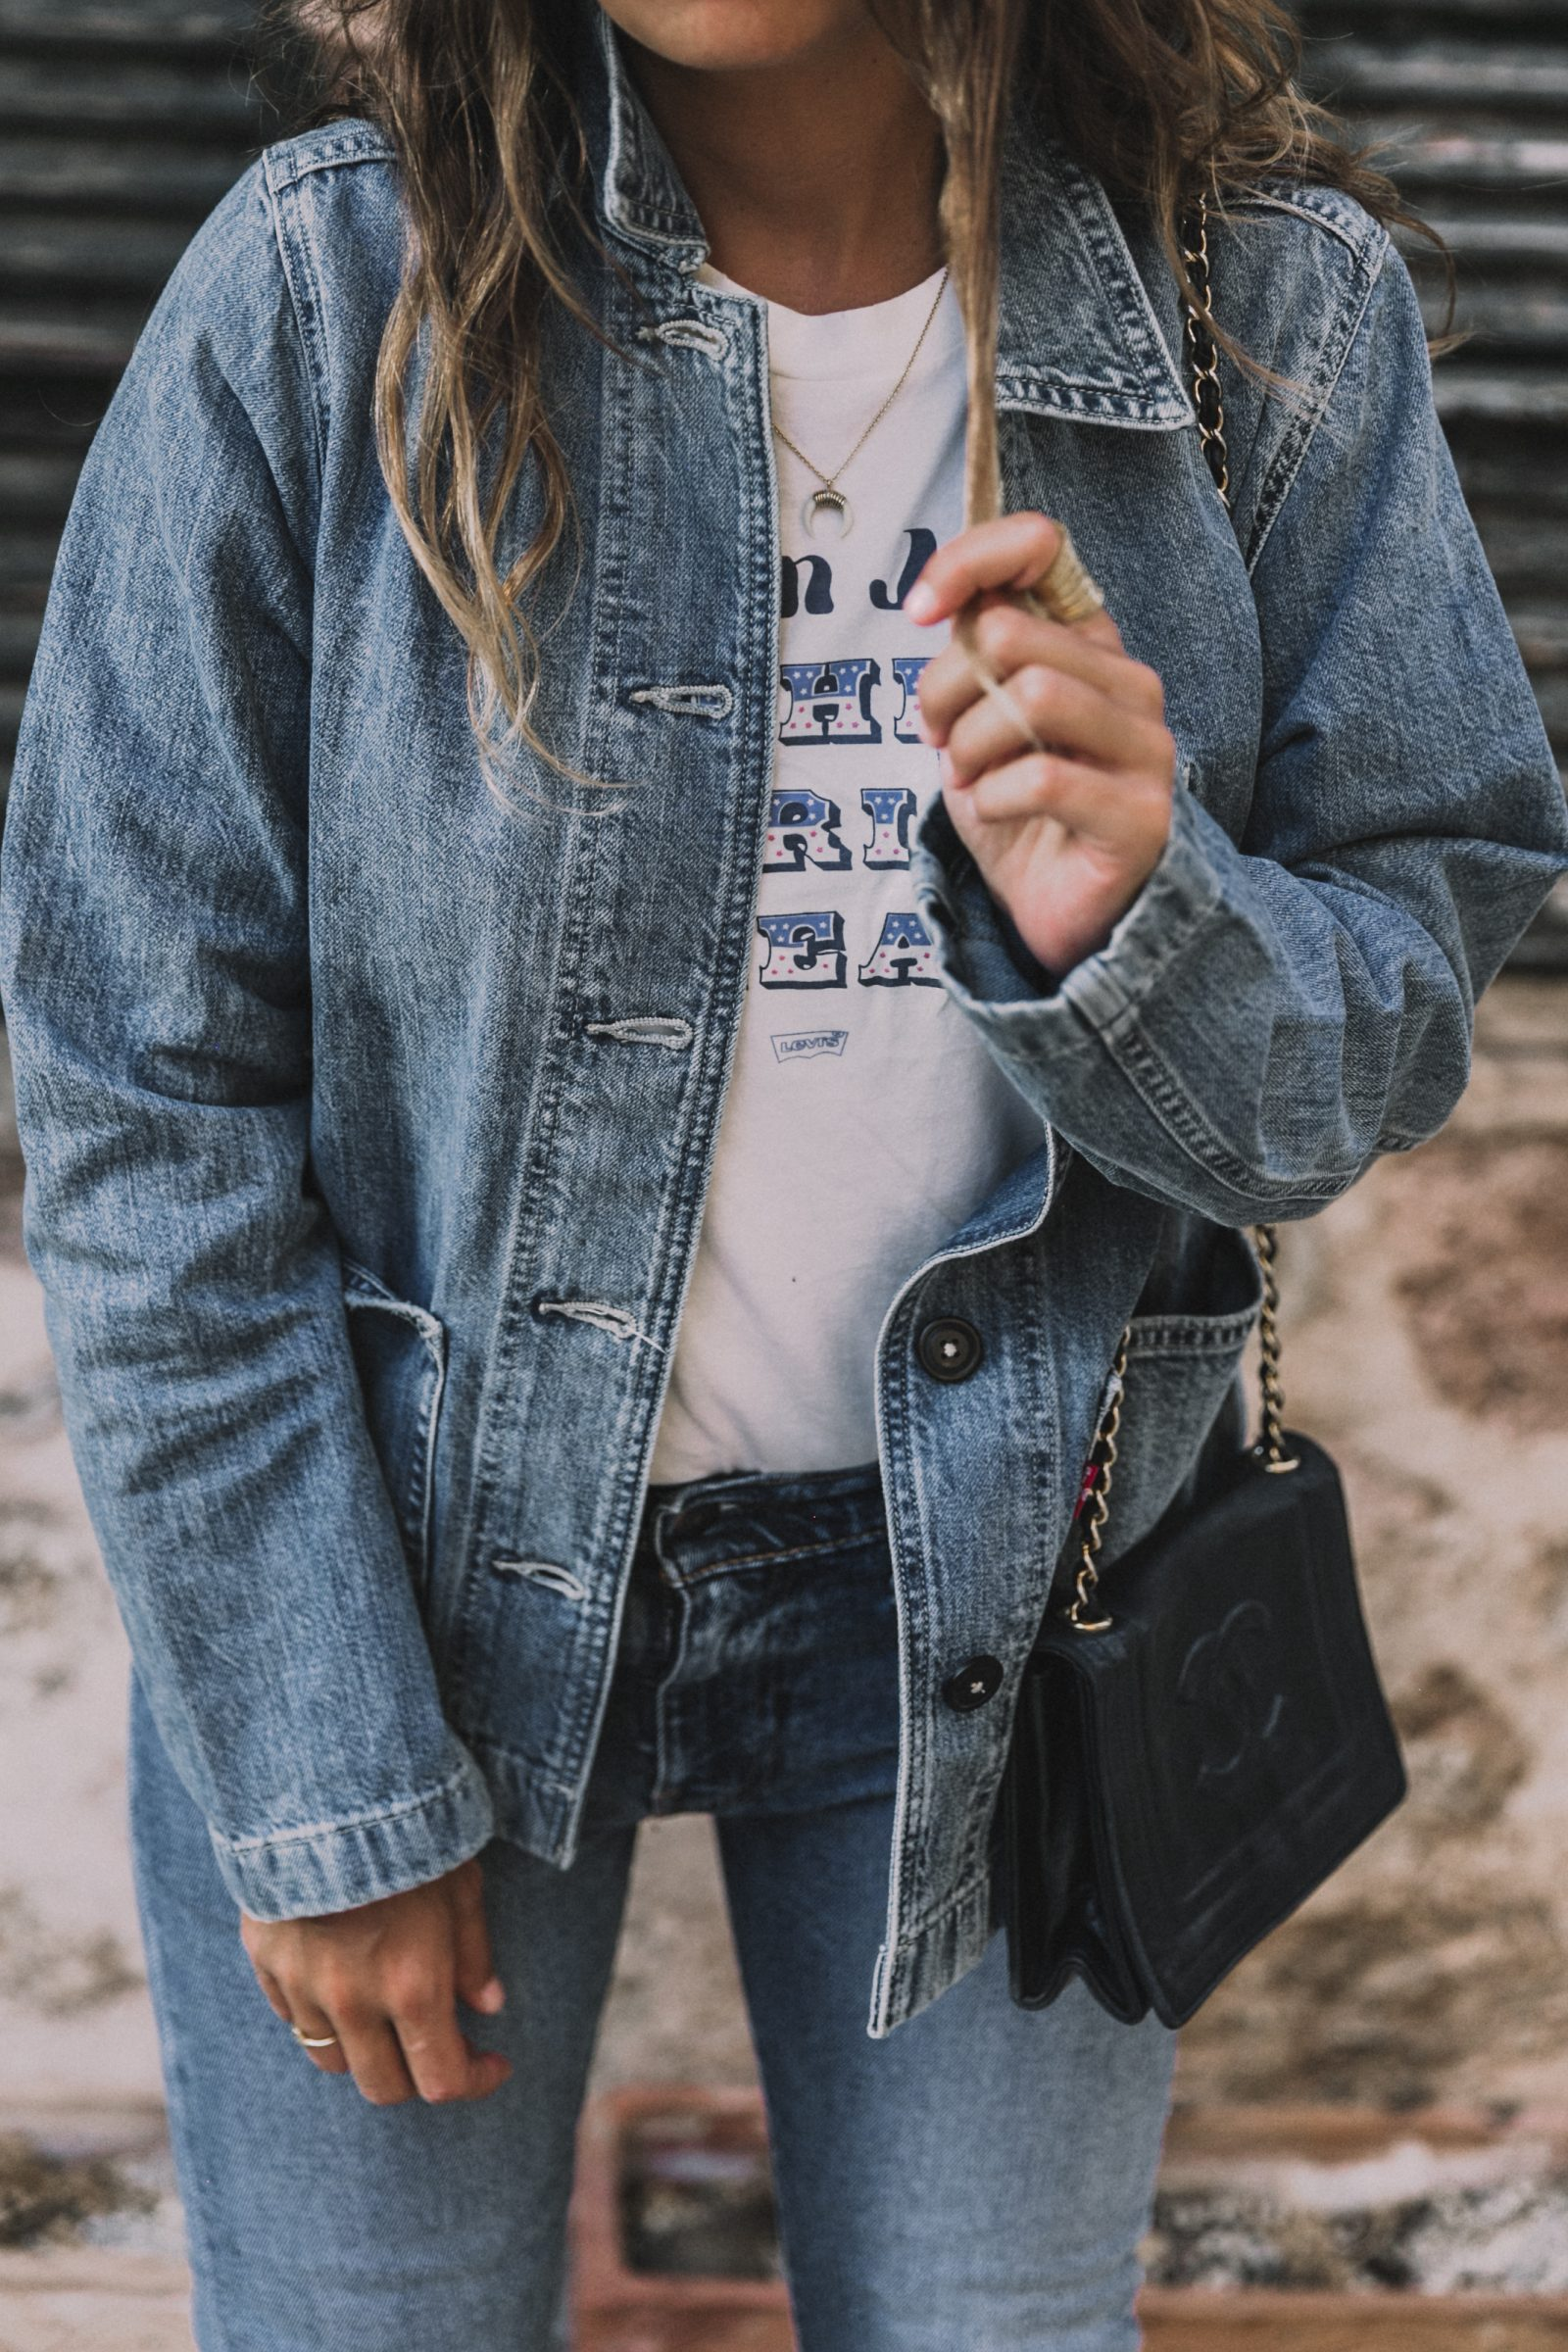 Live_in_Levis-Denim-Who_What_Wear-Levis-Denim-Double_Denim-Menorca-Street_Style-Collage_Vintage-136